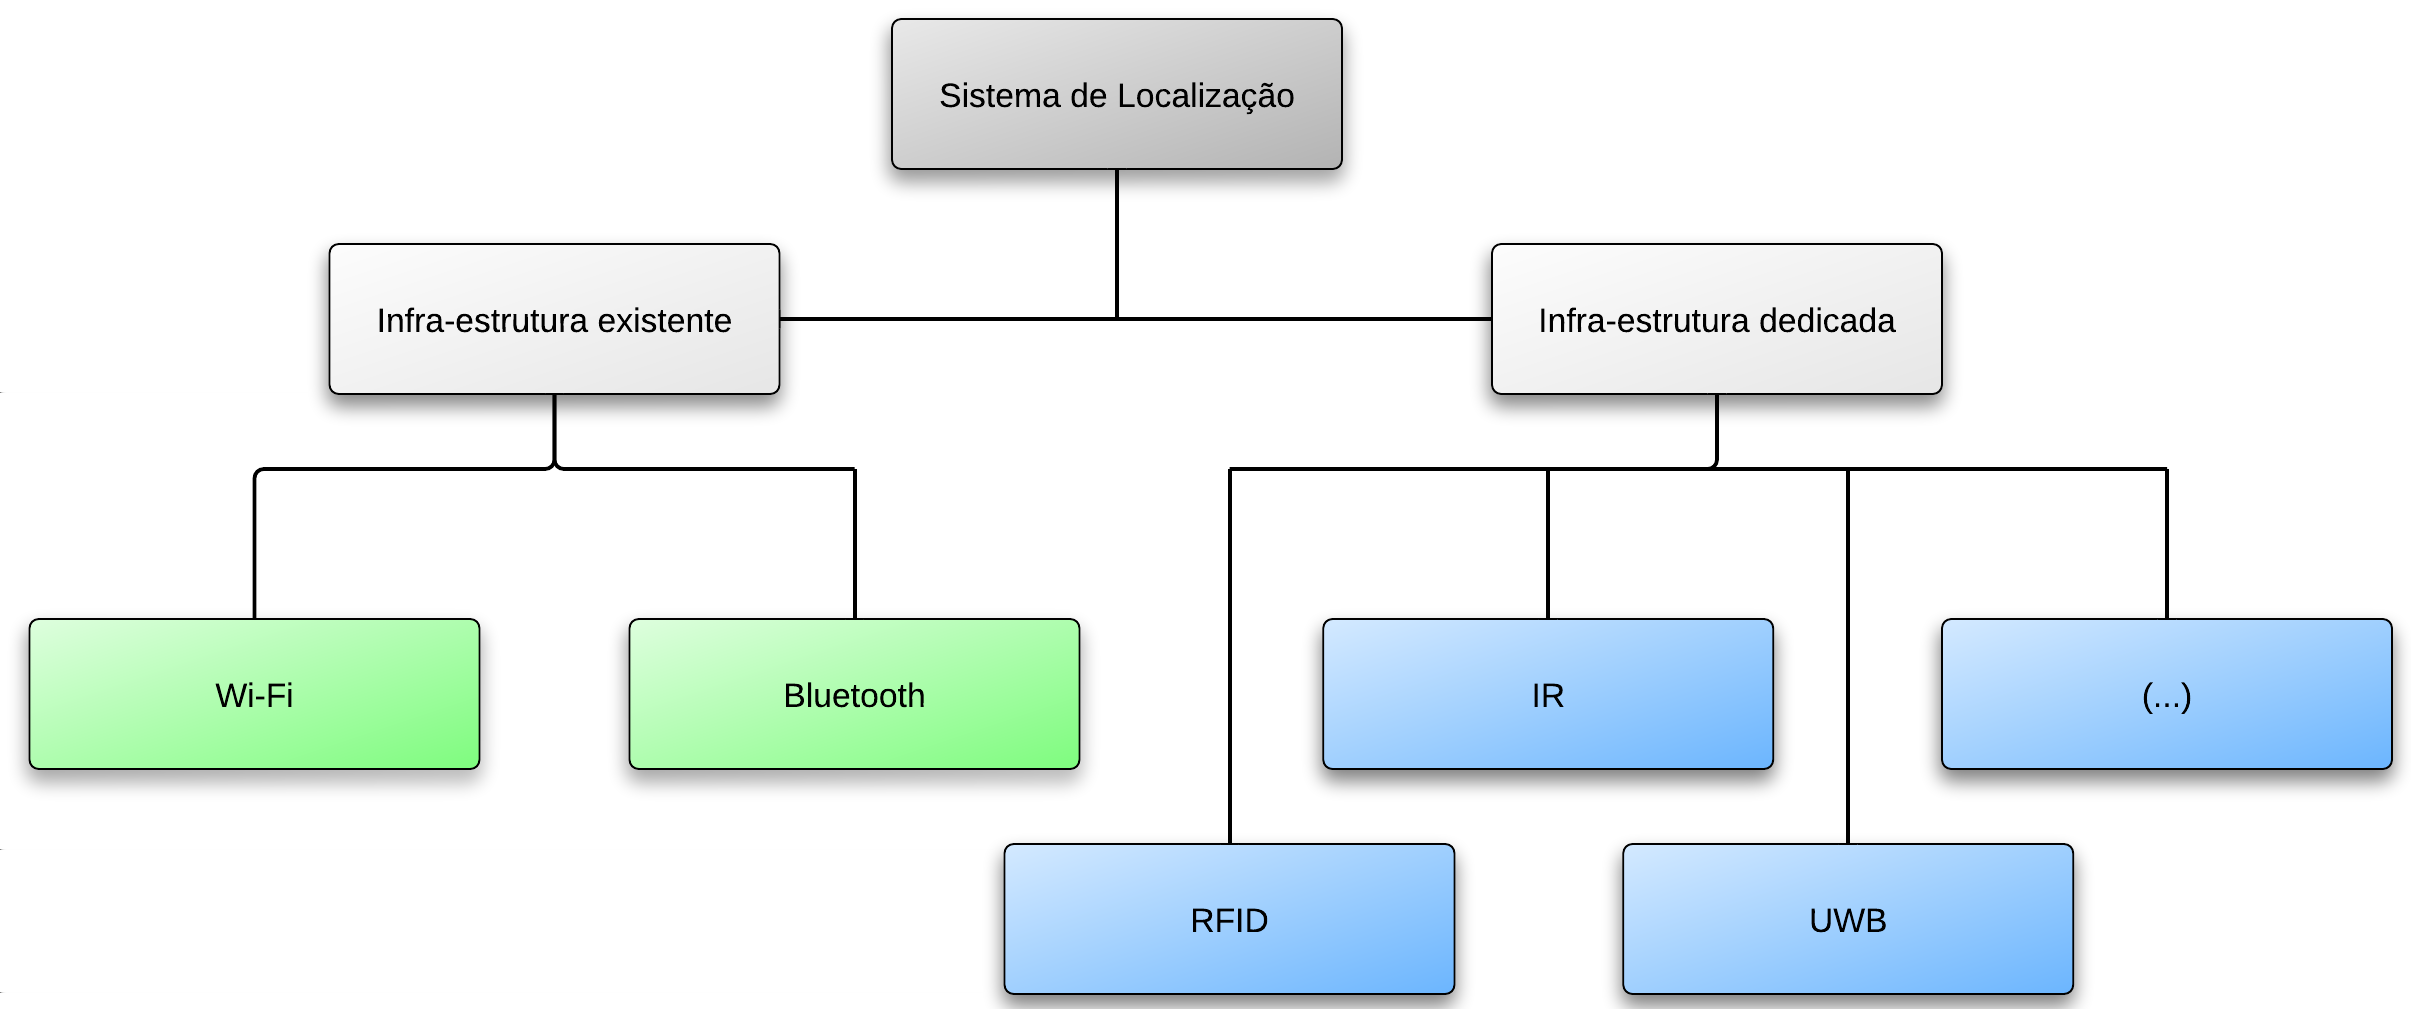 10 LOCALIZAÇÃO NO INTERIOR DE EDÍFICIOS 2.1 Figura 2.1: Classificação das Tecnologias Wireless (UWB), Infrared Radiation (IR) e Bluetooth (IEEE 802.15).